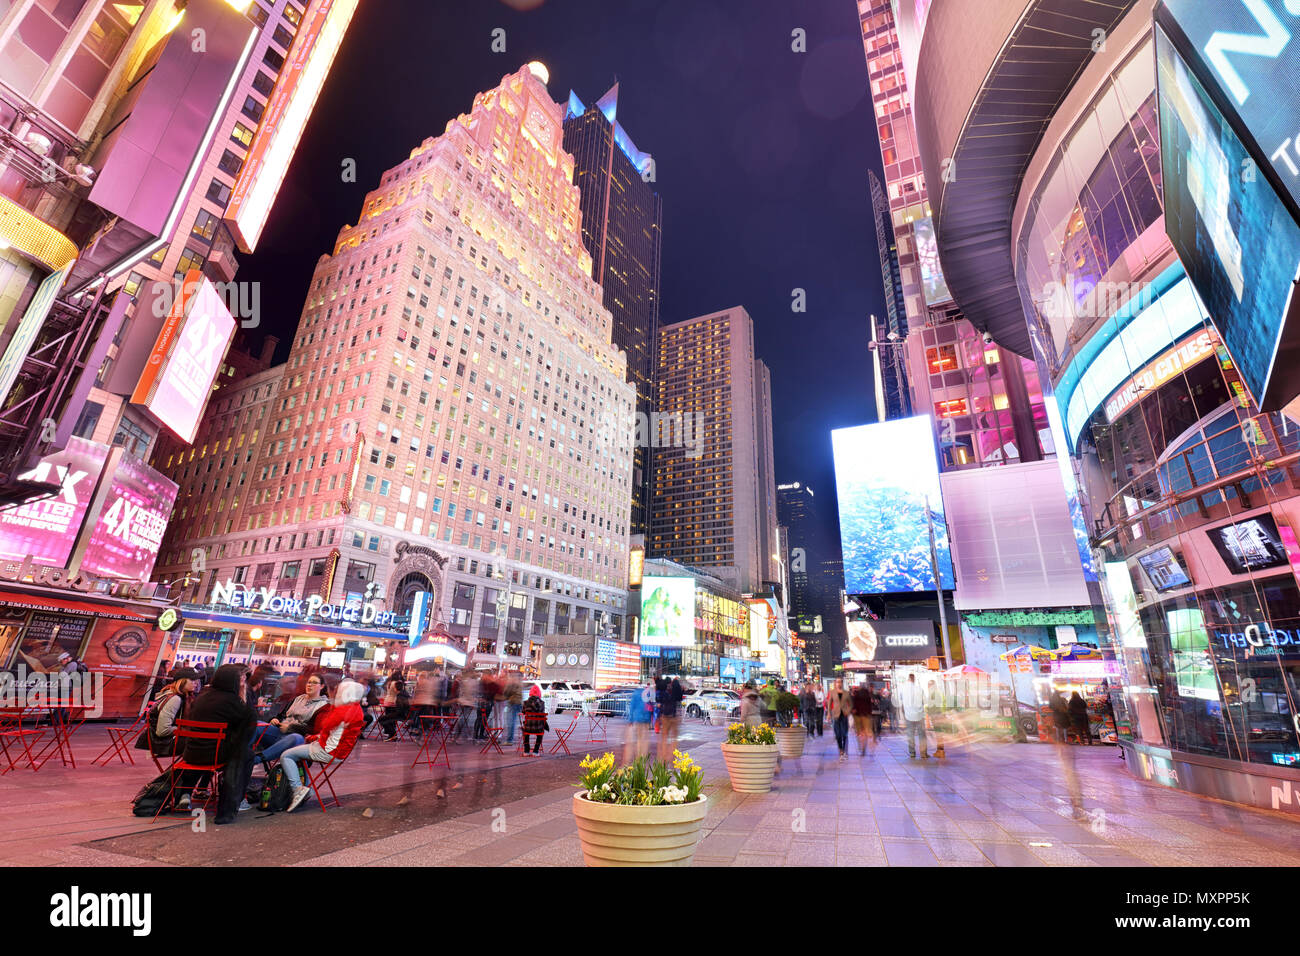 NEW YORK, USA - APRIL 12: The architecture of the famous Times Square in New York city, USA with its neon lights and panels at night and a lot of tour - Stock Image